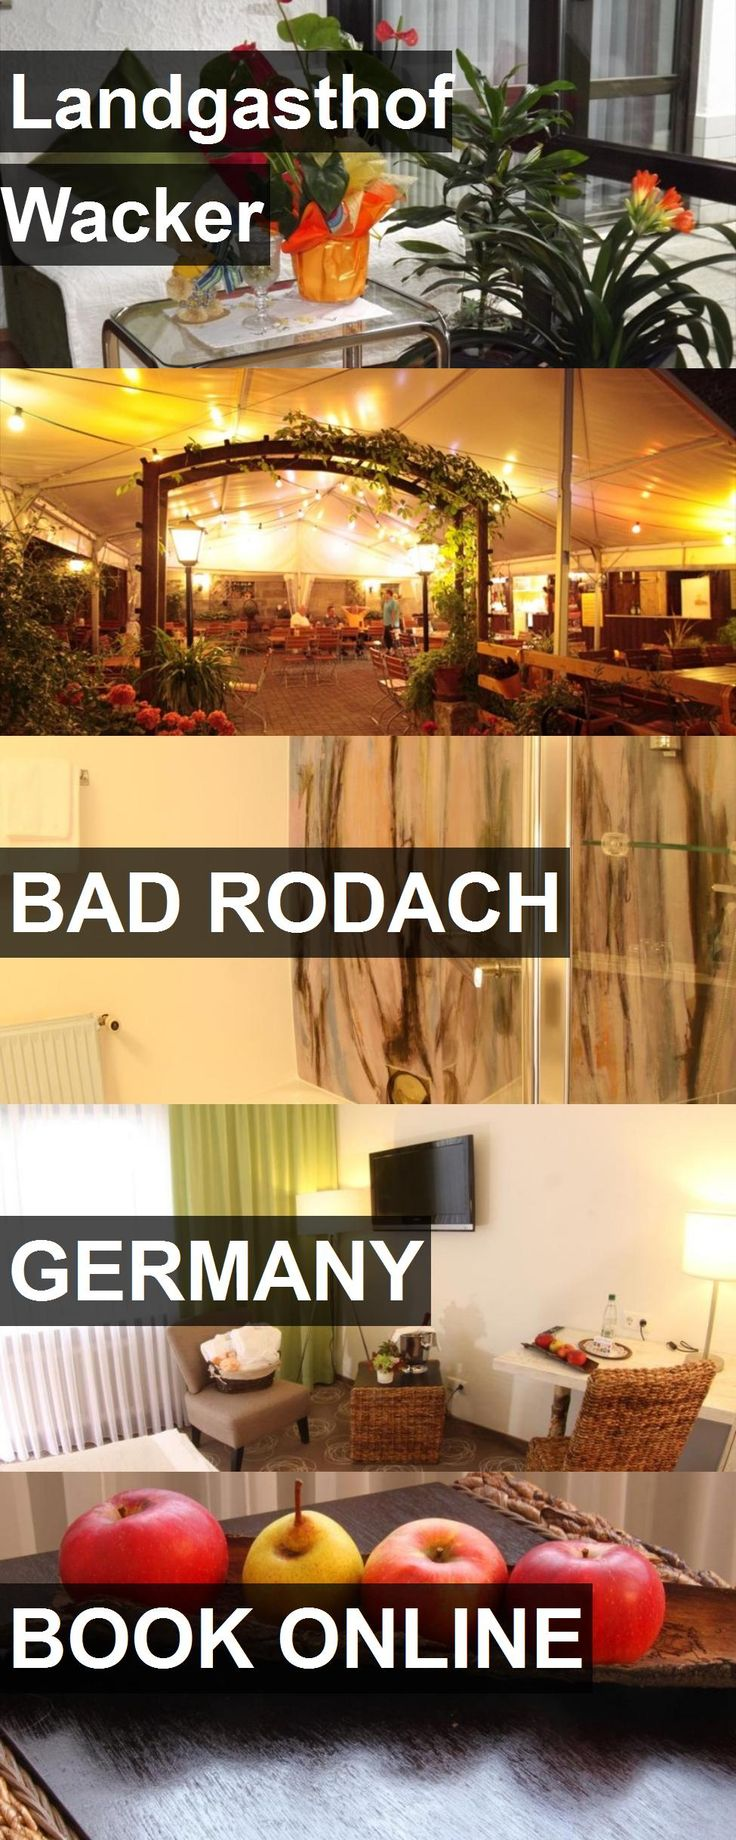 Hotel Landgasthof Wacker in Bad Rodach, Germany. For more information, photos, reviews and best prices please follow the link. #Germany #BadRodach #travel #vacation #hotel